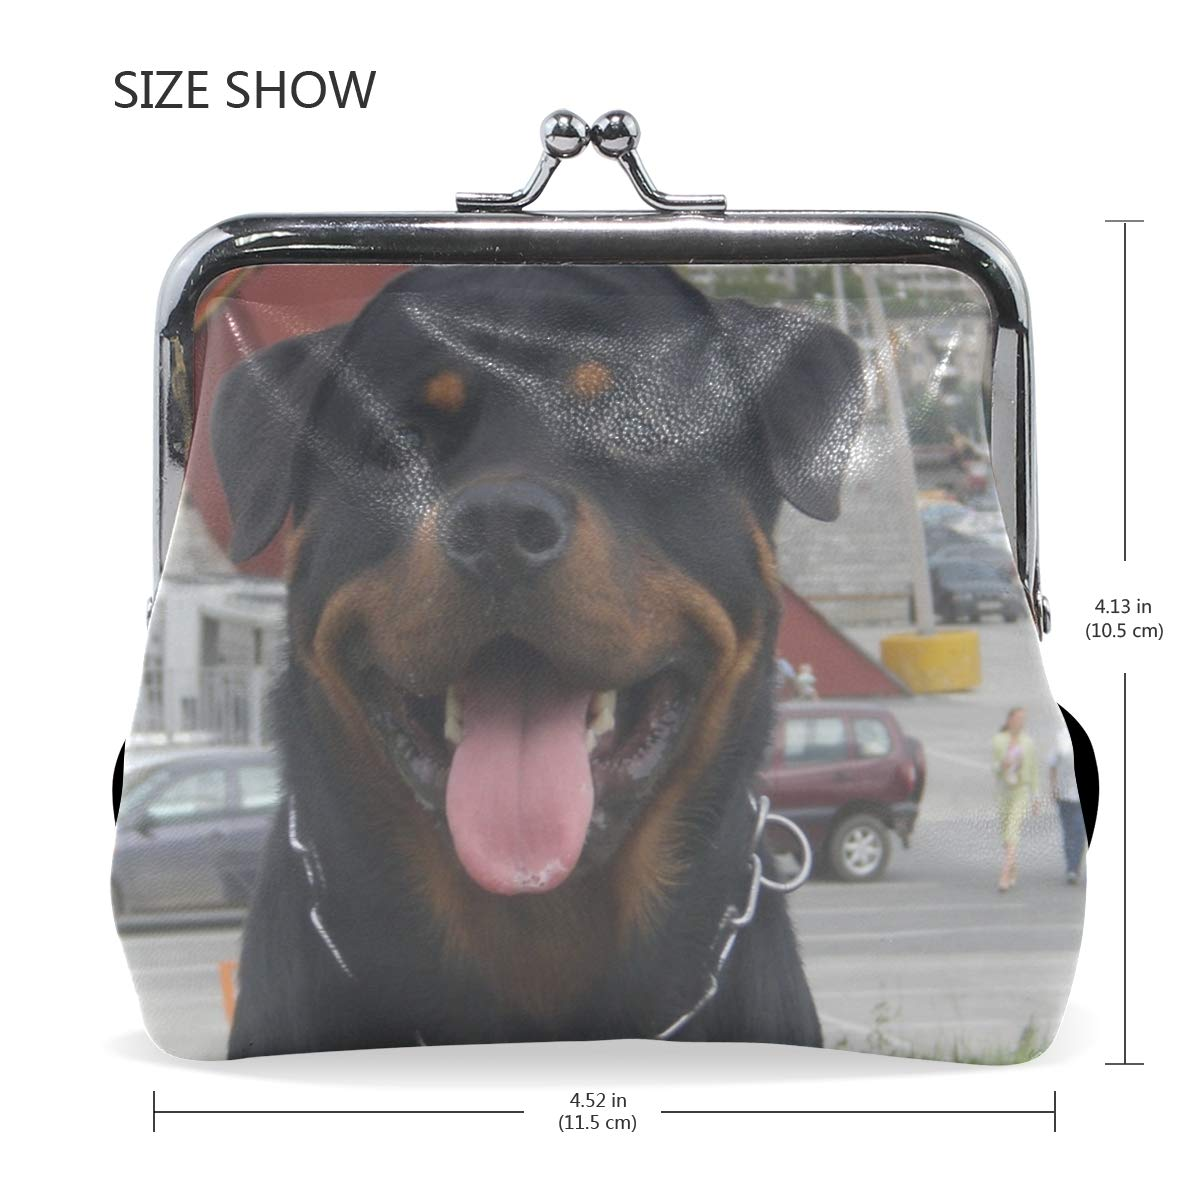 Rh Studio Coin Purse Clasp Closure Dog Face Protruding Tongue Rottweiler Print Wallet Exquisite Coin Pouch Girls Women Clutch Handbag Exquisite Gift